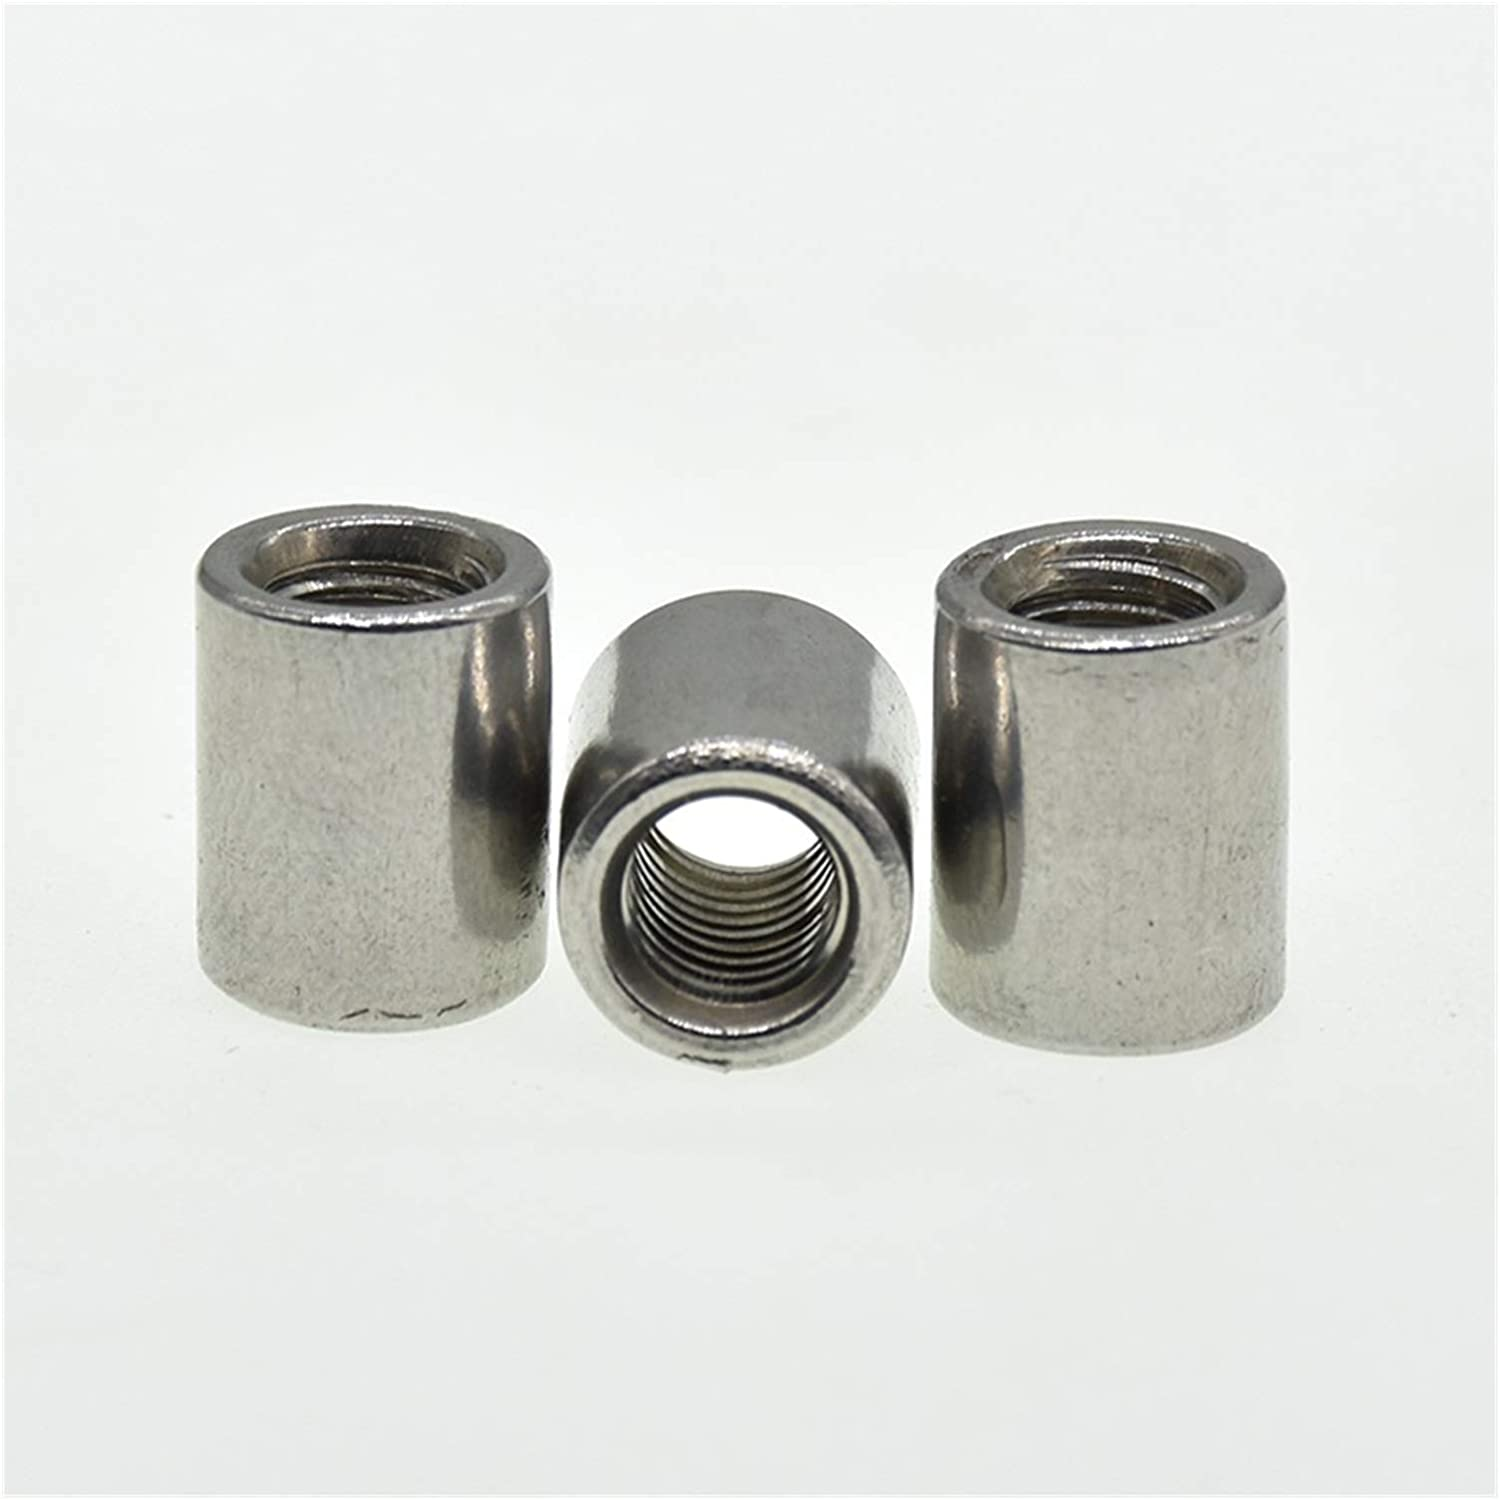 WYHM Long Hexagon Industry No. 1 Nut Round Coupling Boston Mall Nuts M3 M6 M10 M4 Ext M5 M8